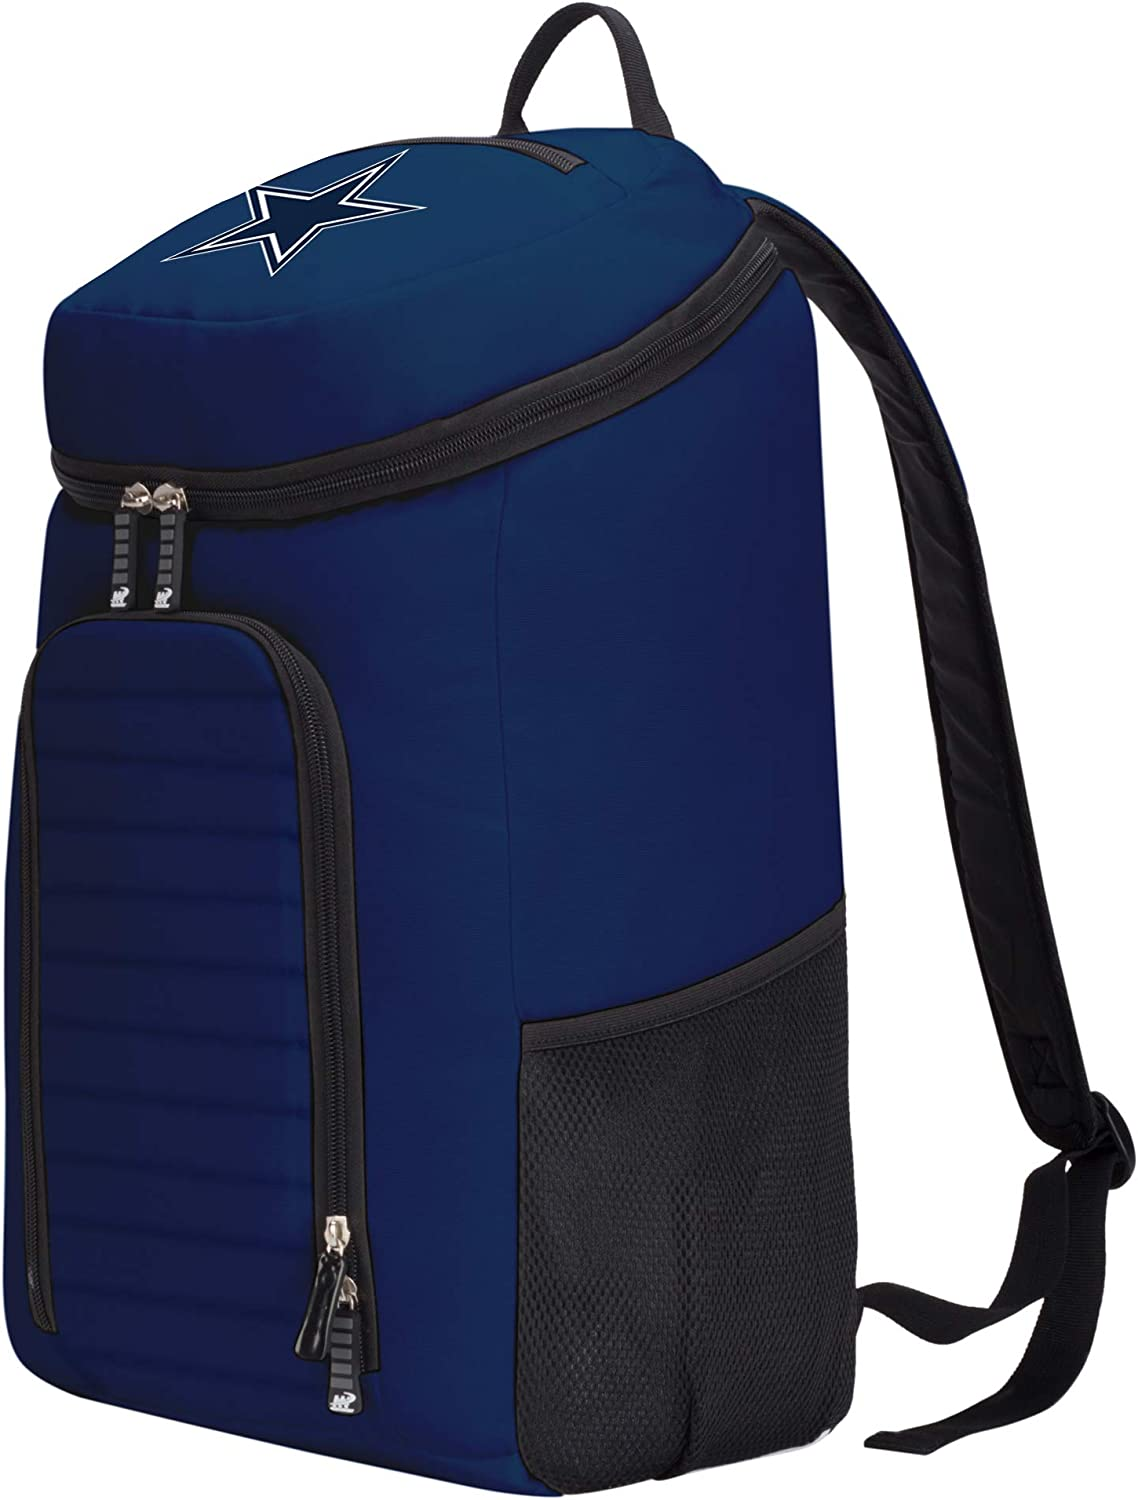 Black Officially Licensed NFL Dallas Cowboys Topliner Backpack 19 x 7 x 11